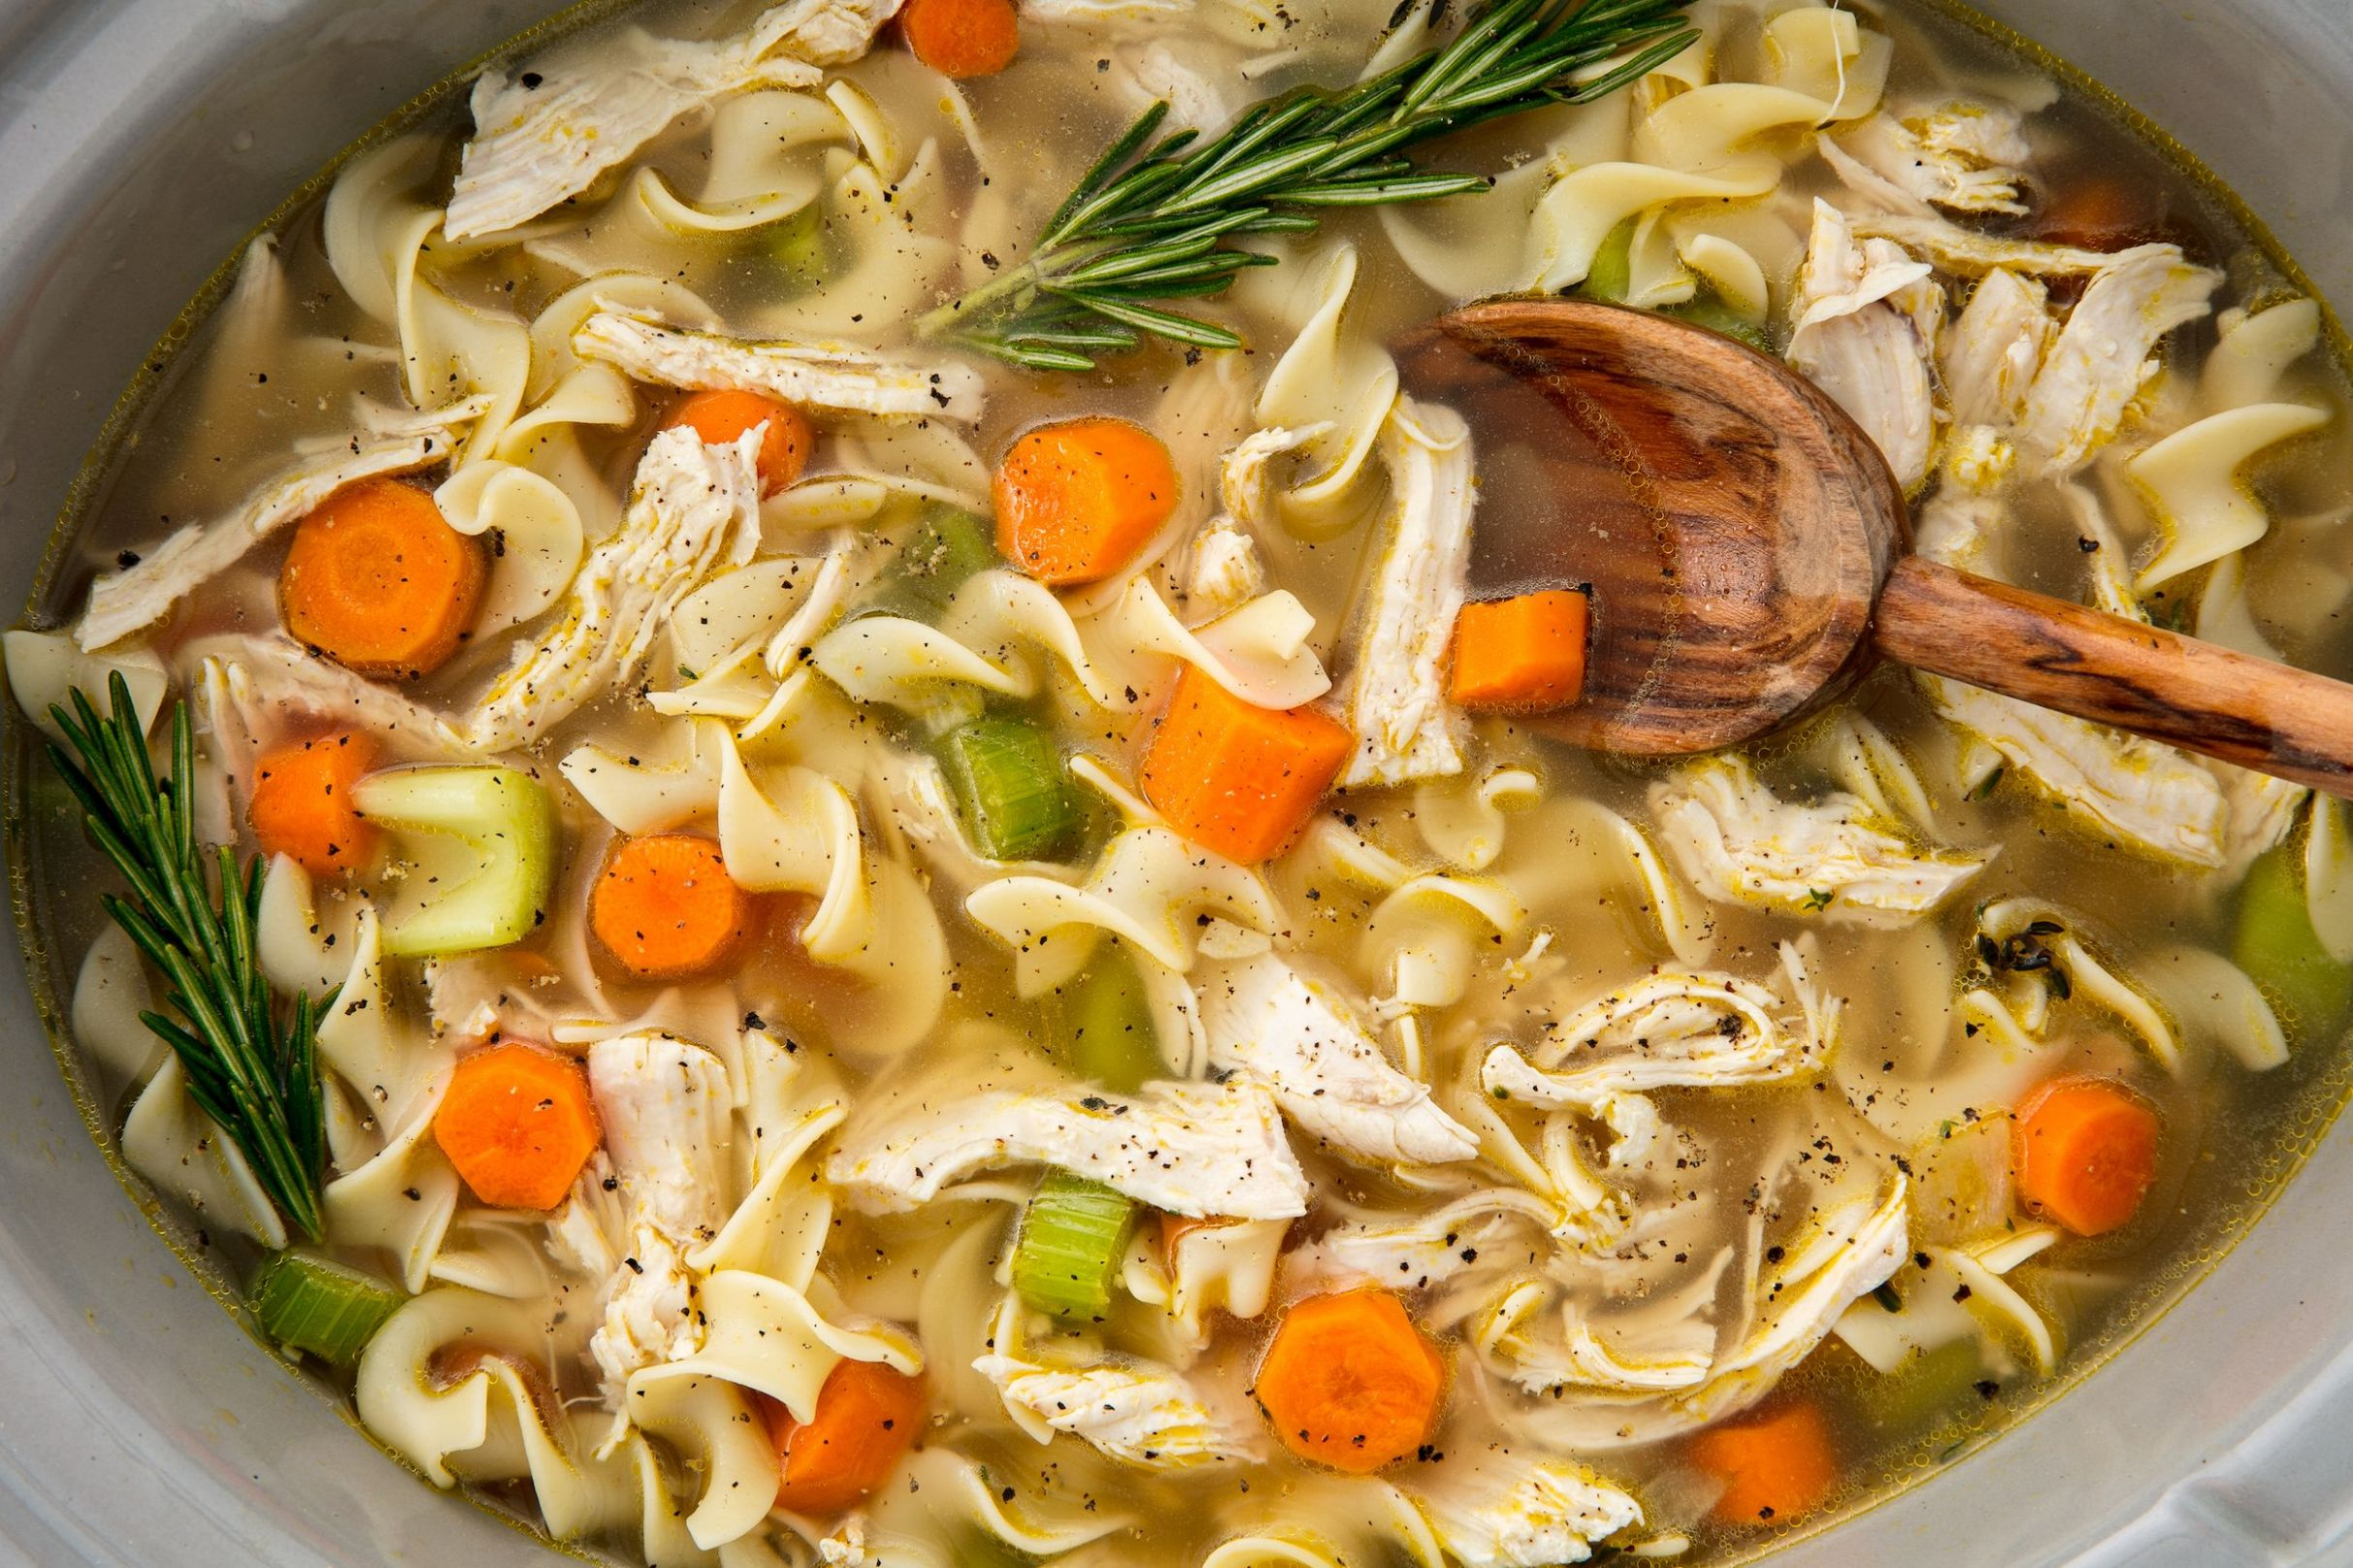 Crock-Pot Chicken Noodle Will Warm Up Your Whole Crew - Recipes Chicken Noodle Soup Crock Pot